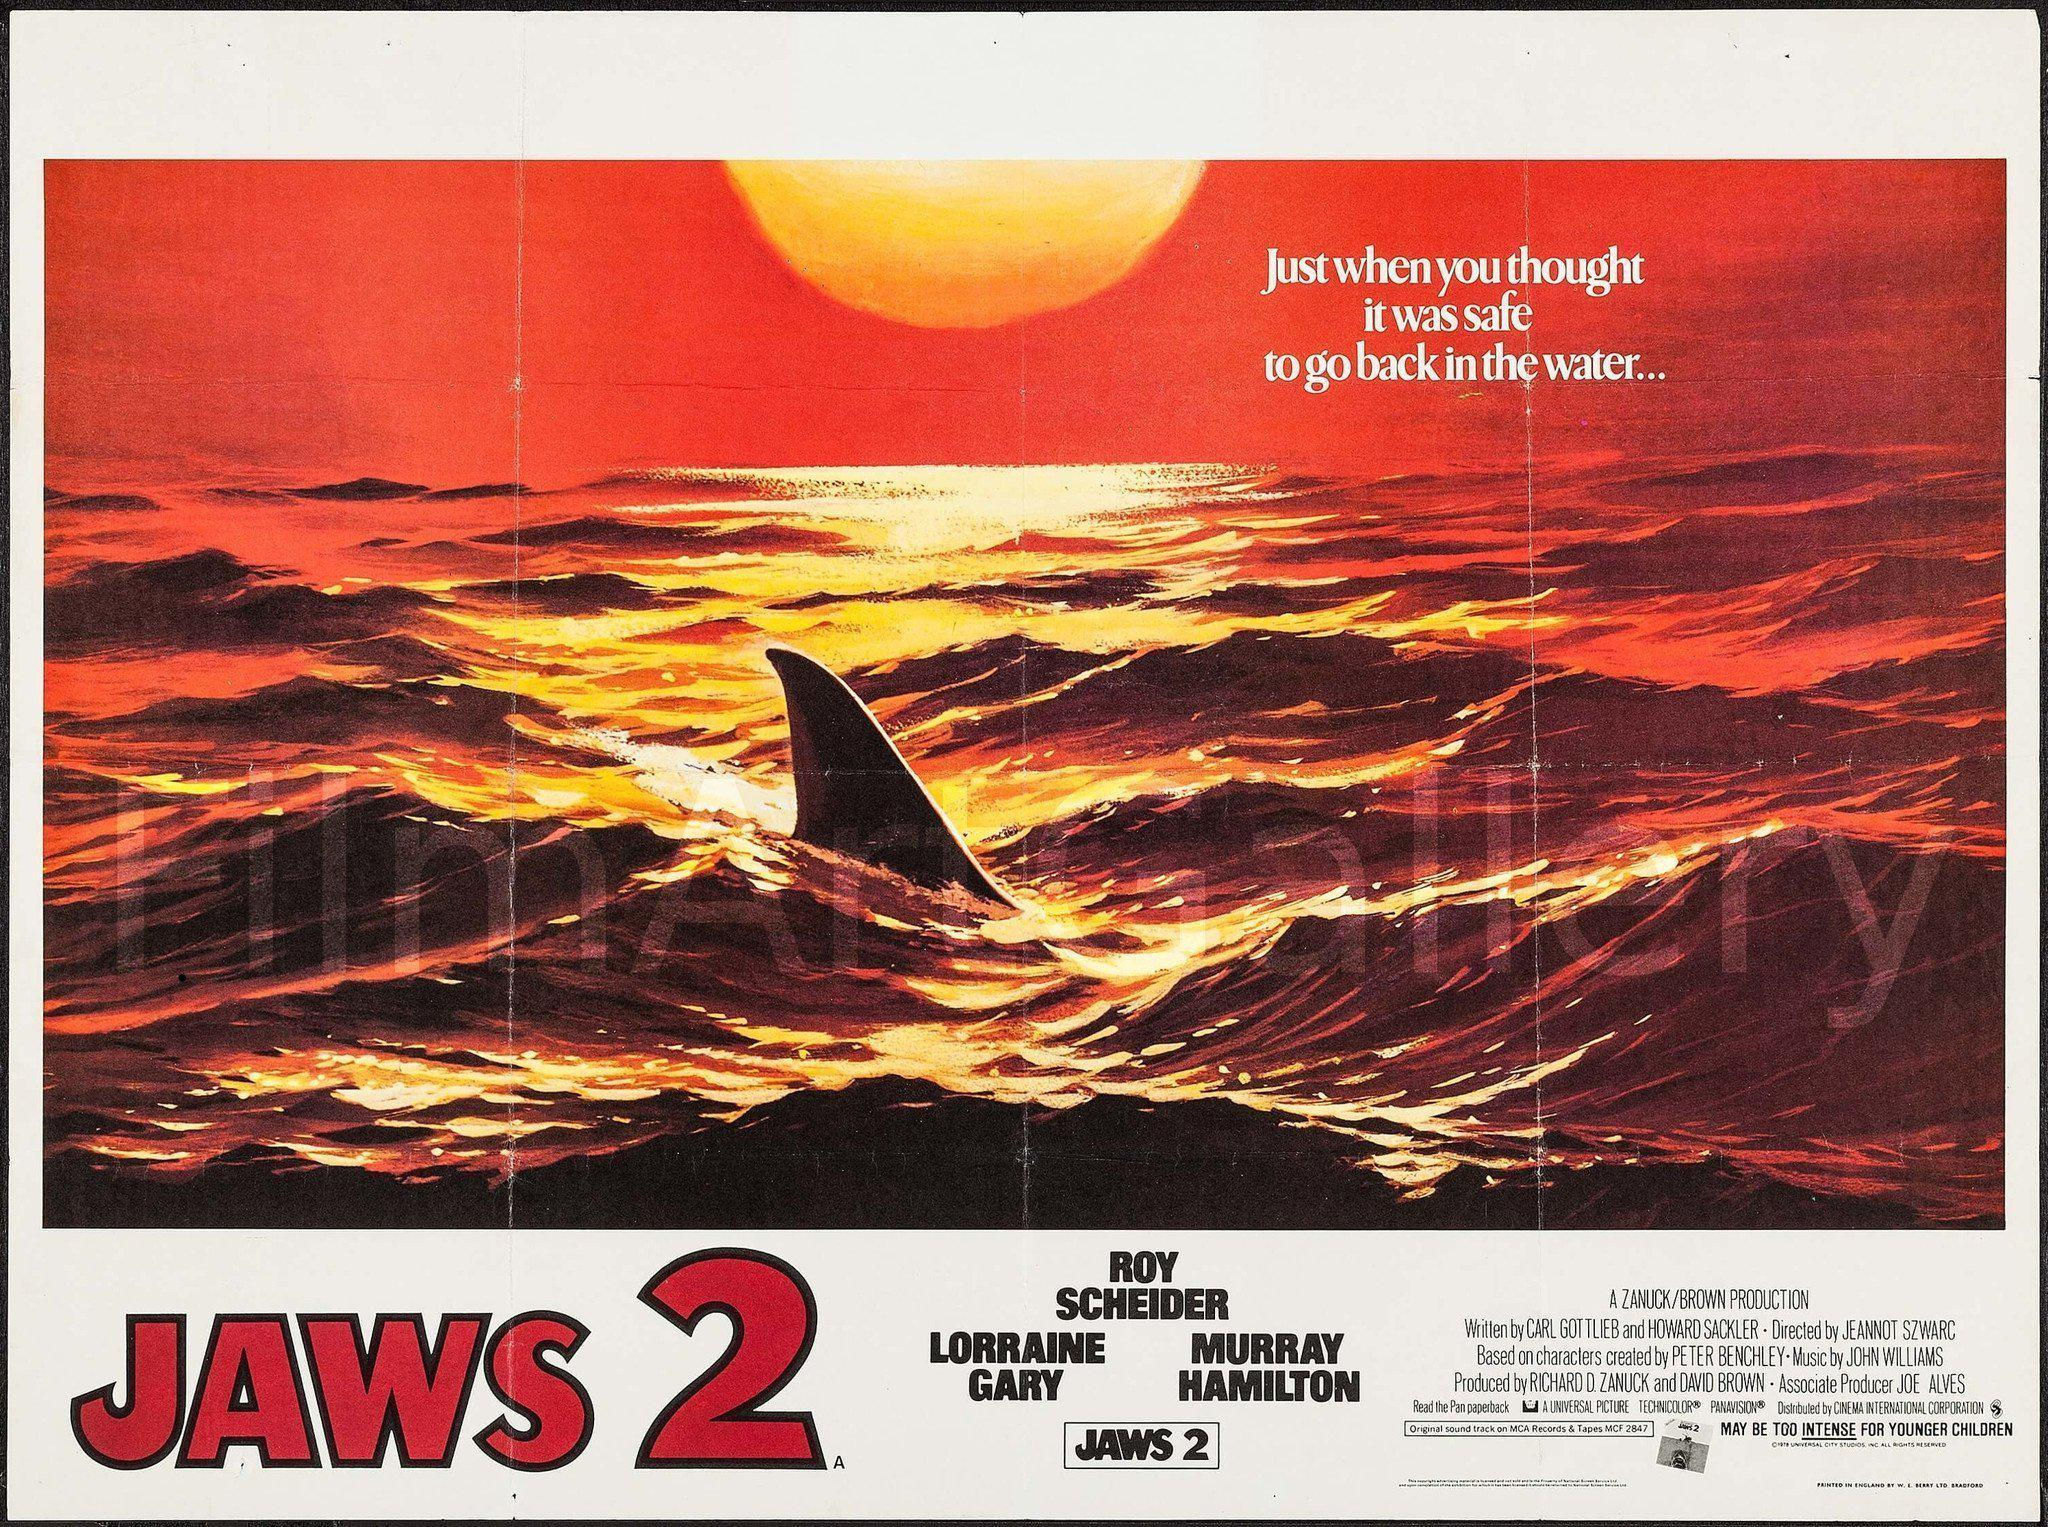 Where Was Jaws 2 Filmed